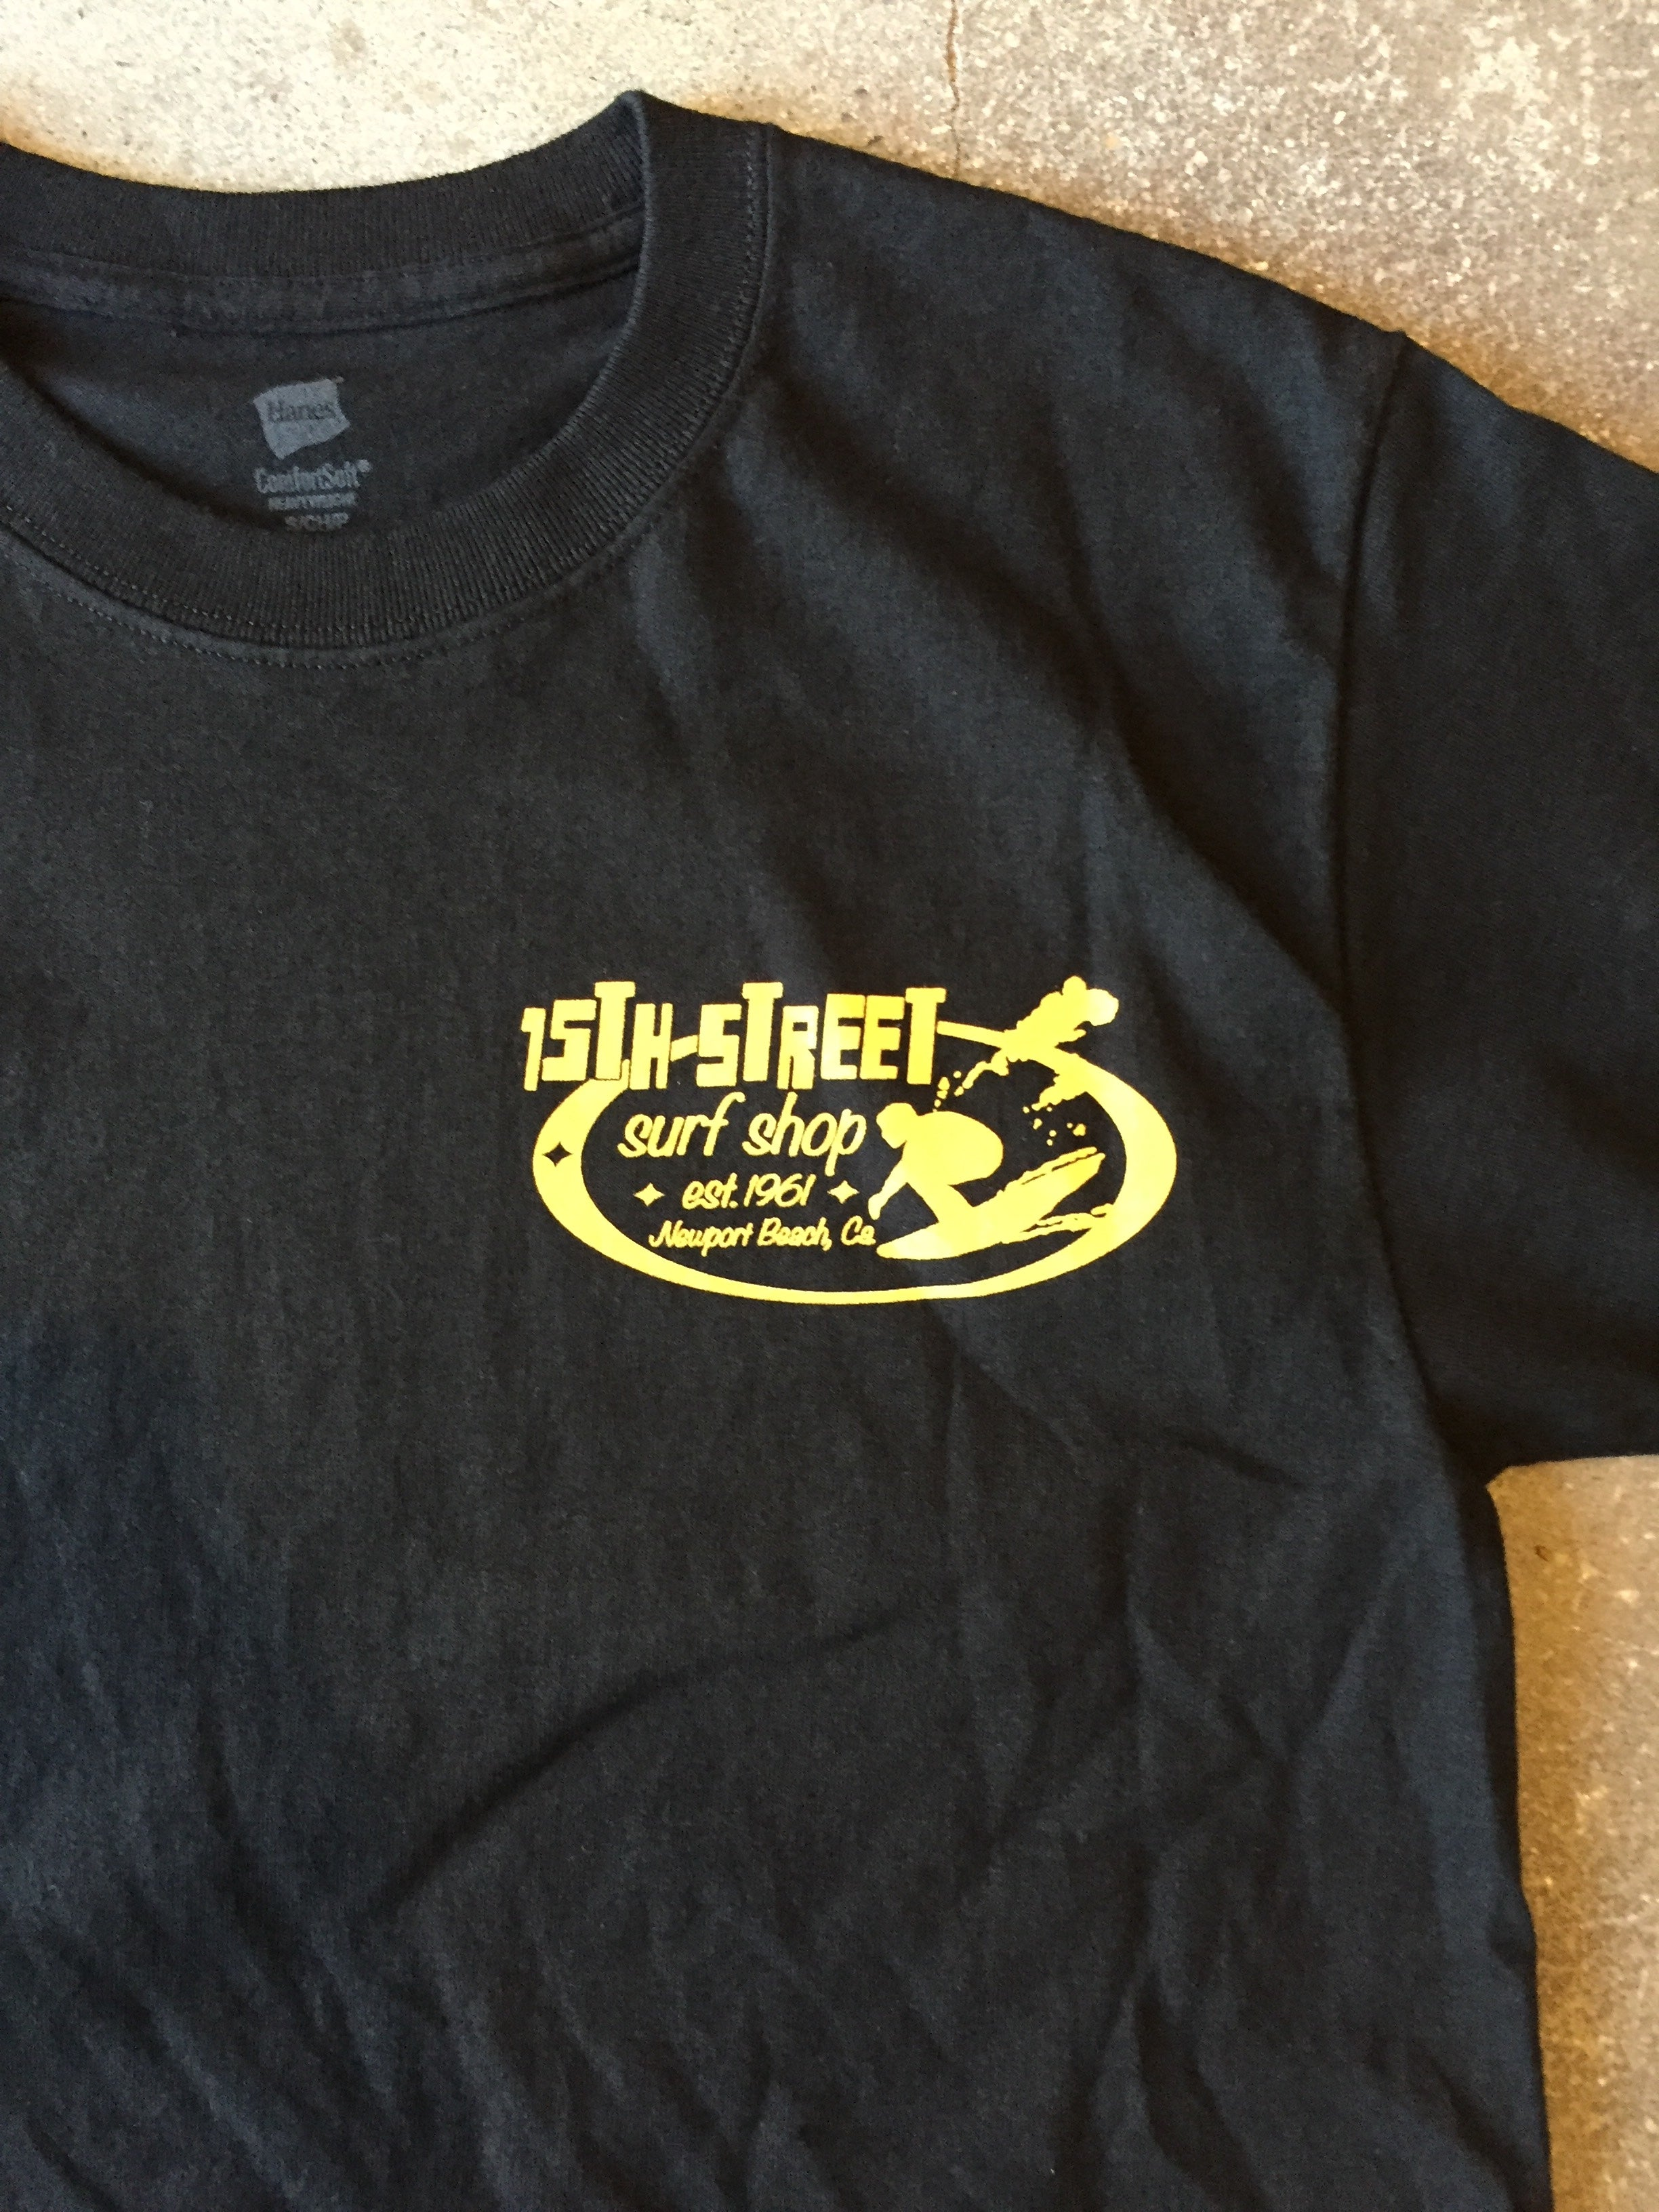 15th St Men's Since 1961 Short Sleeve T-Shirt BLACK WITH GOLD